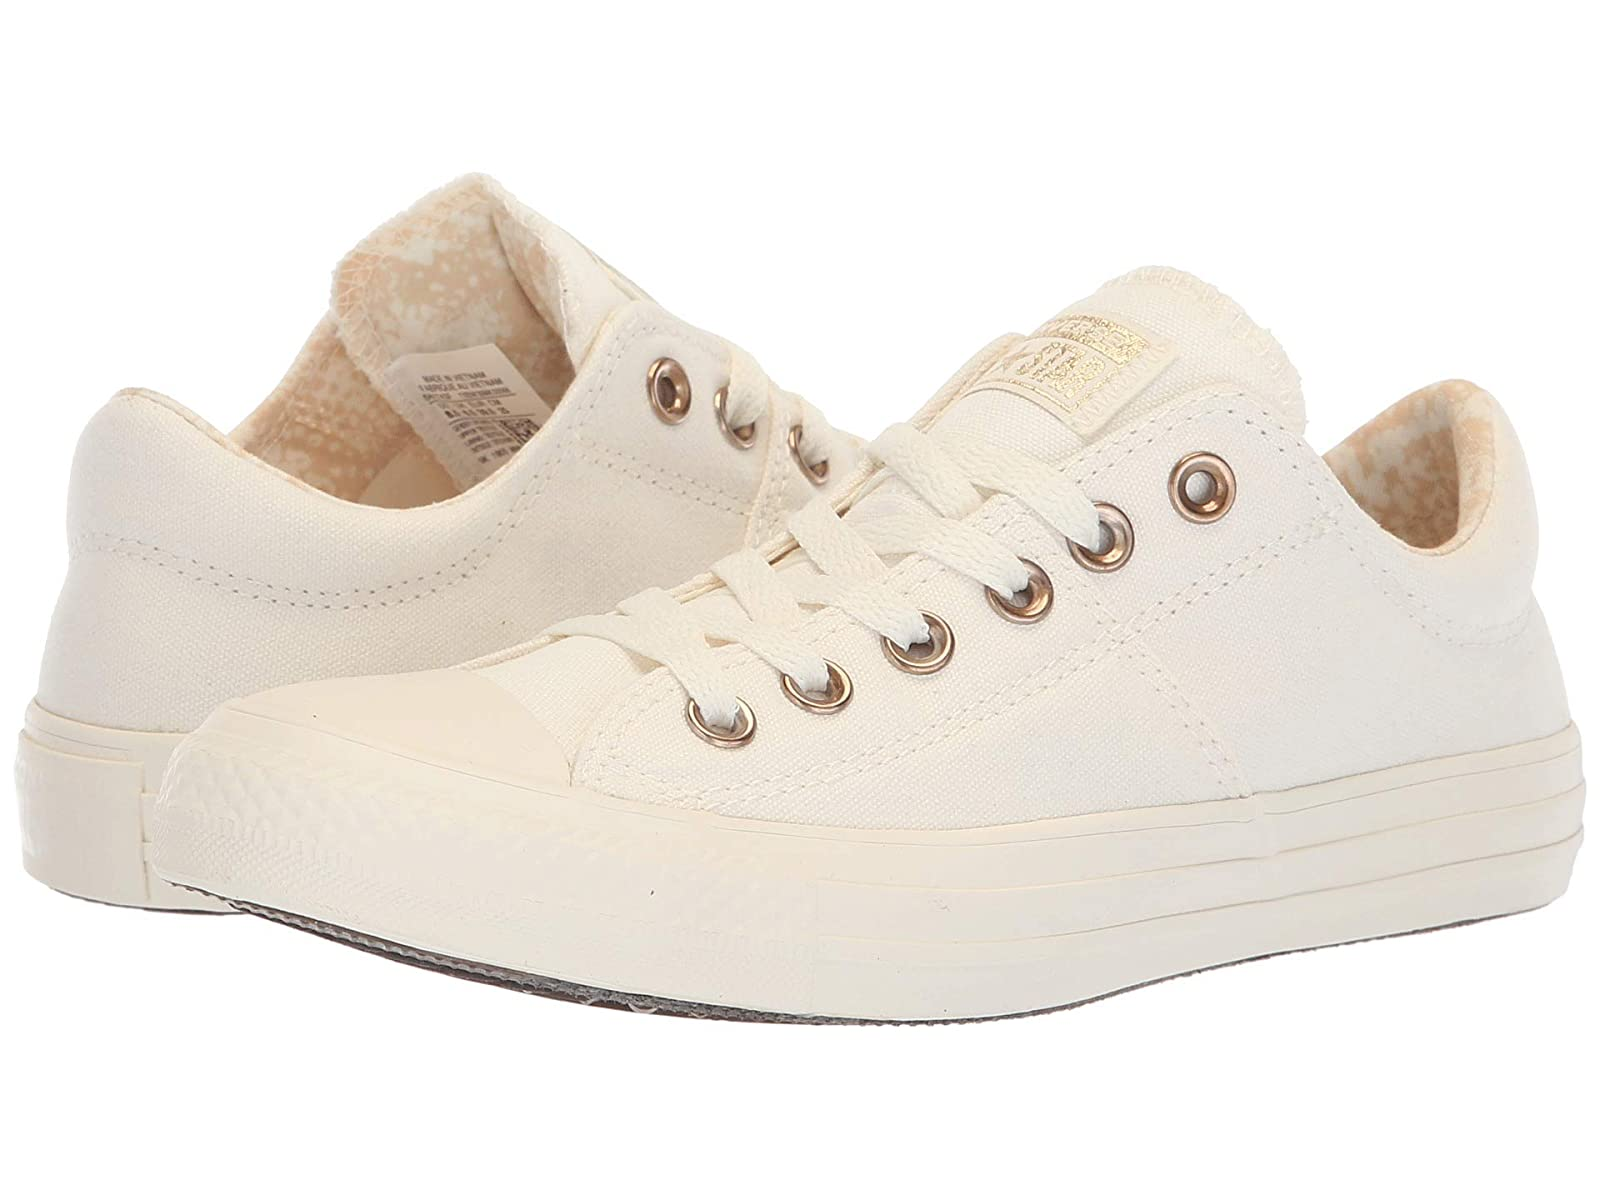 Converse Madison Chuck Taylor All Star Madison Converse Rep Style Ox a520dd